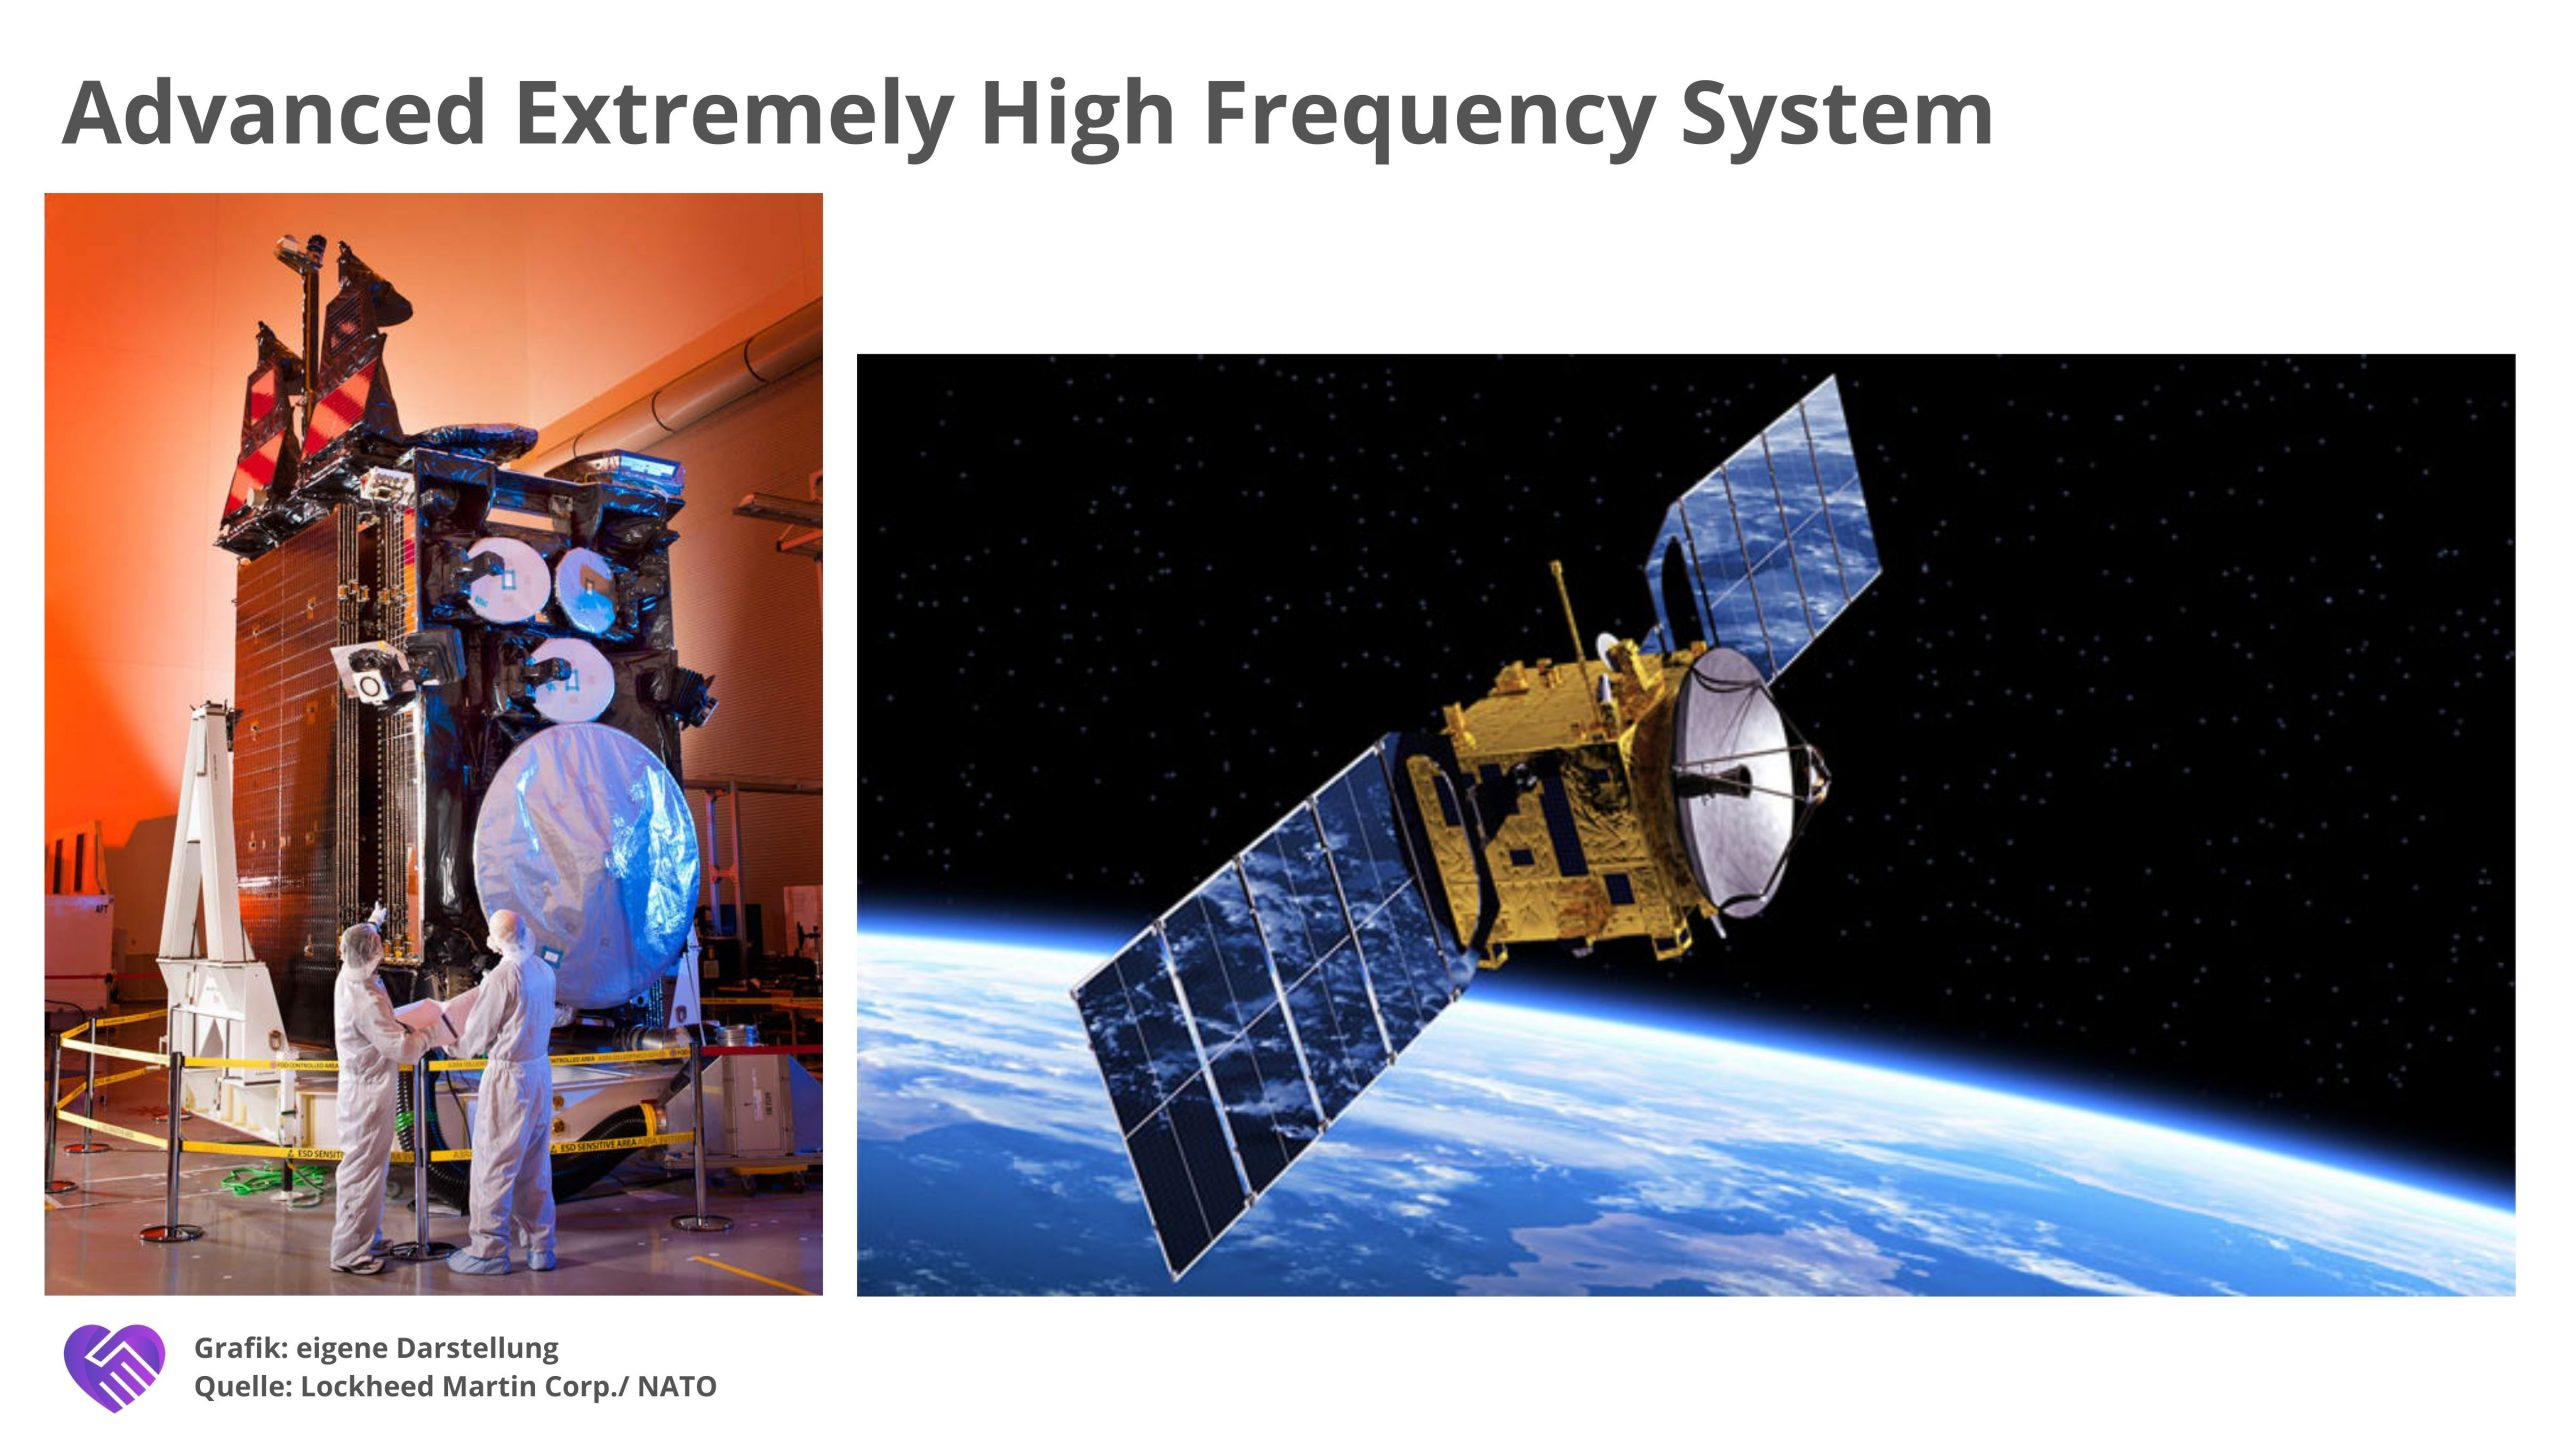 Lockheed Martin Aktie Analyse Geschäftsmodell Advanced Extremely High Frequency System